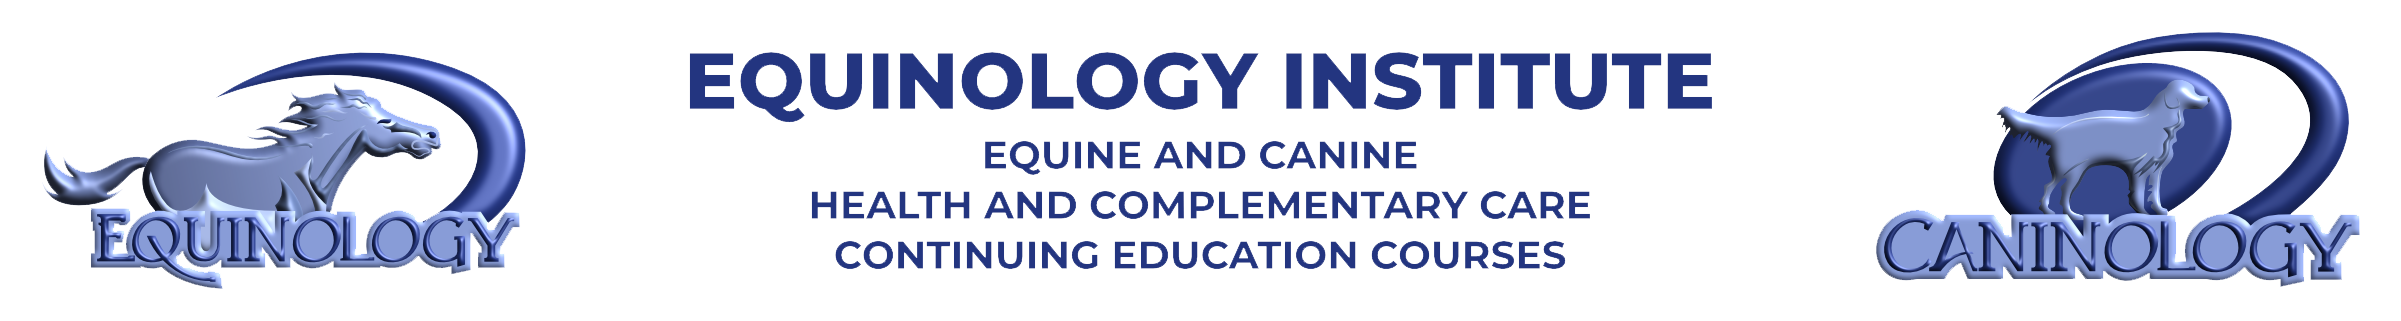 Equinology Institute Mobile Logo